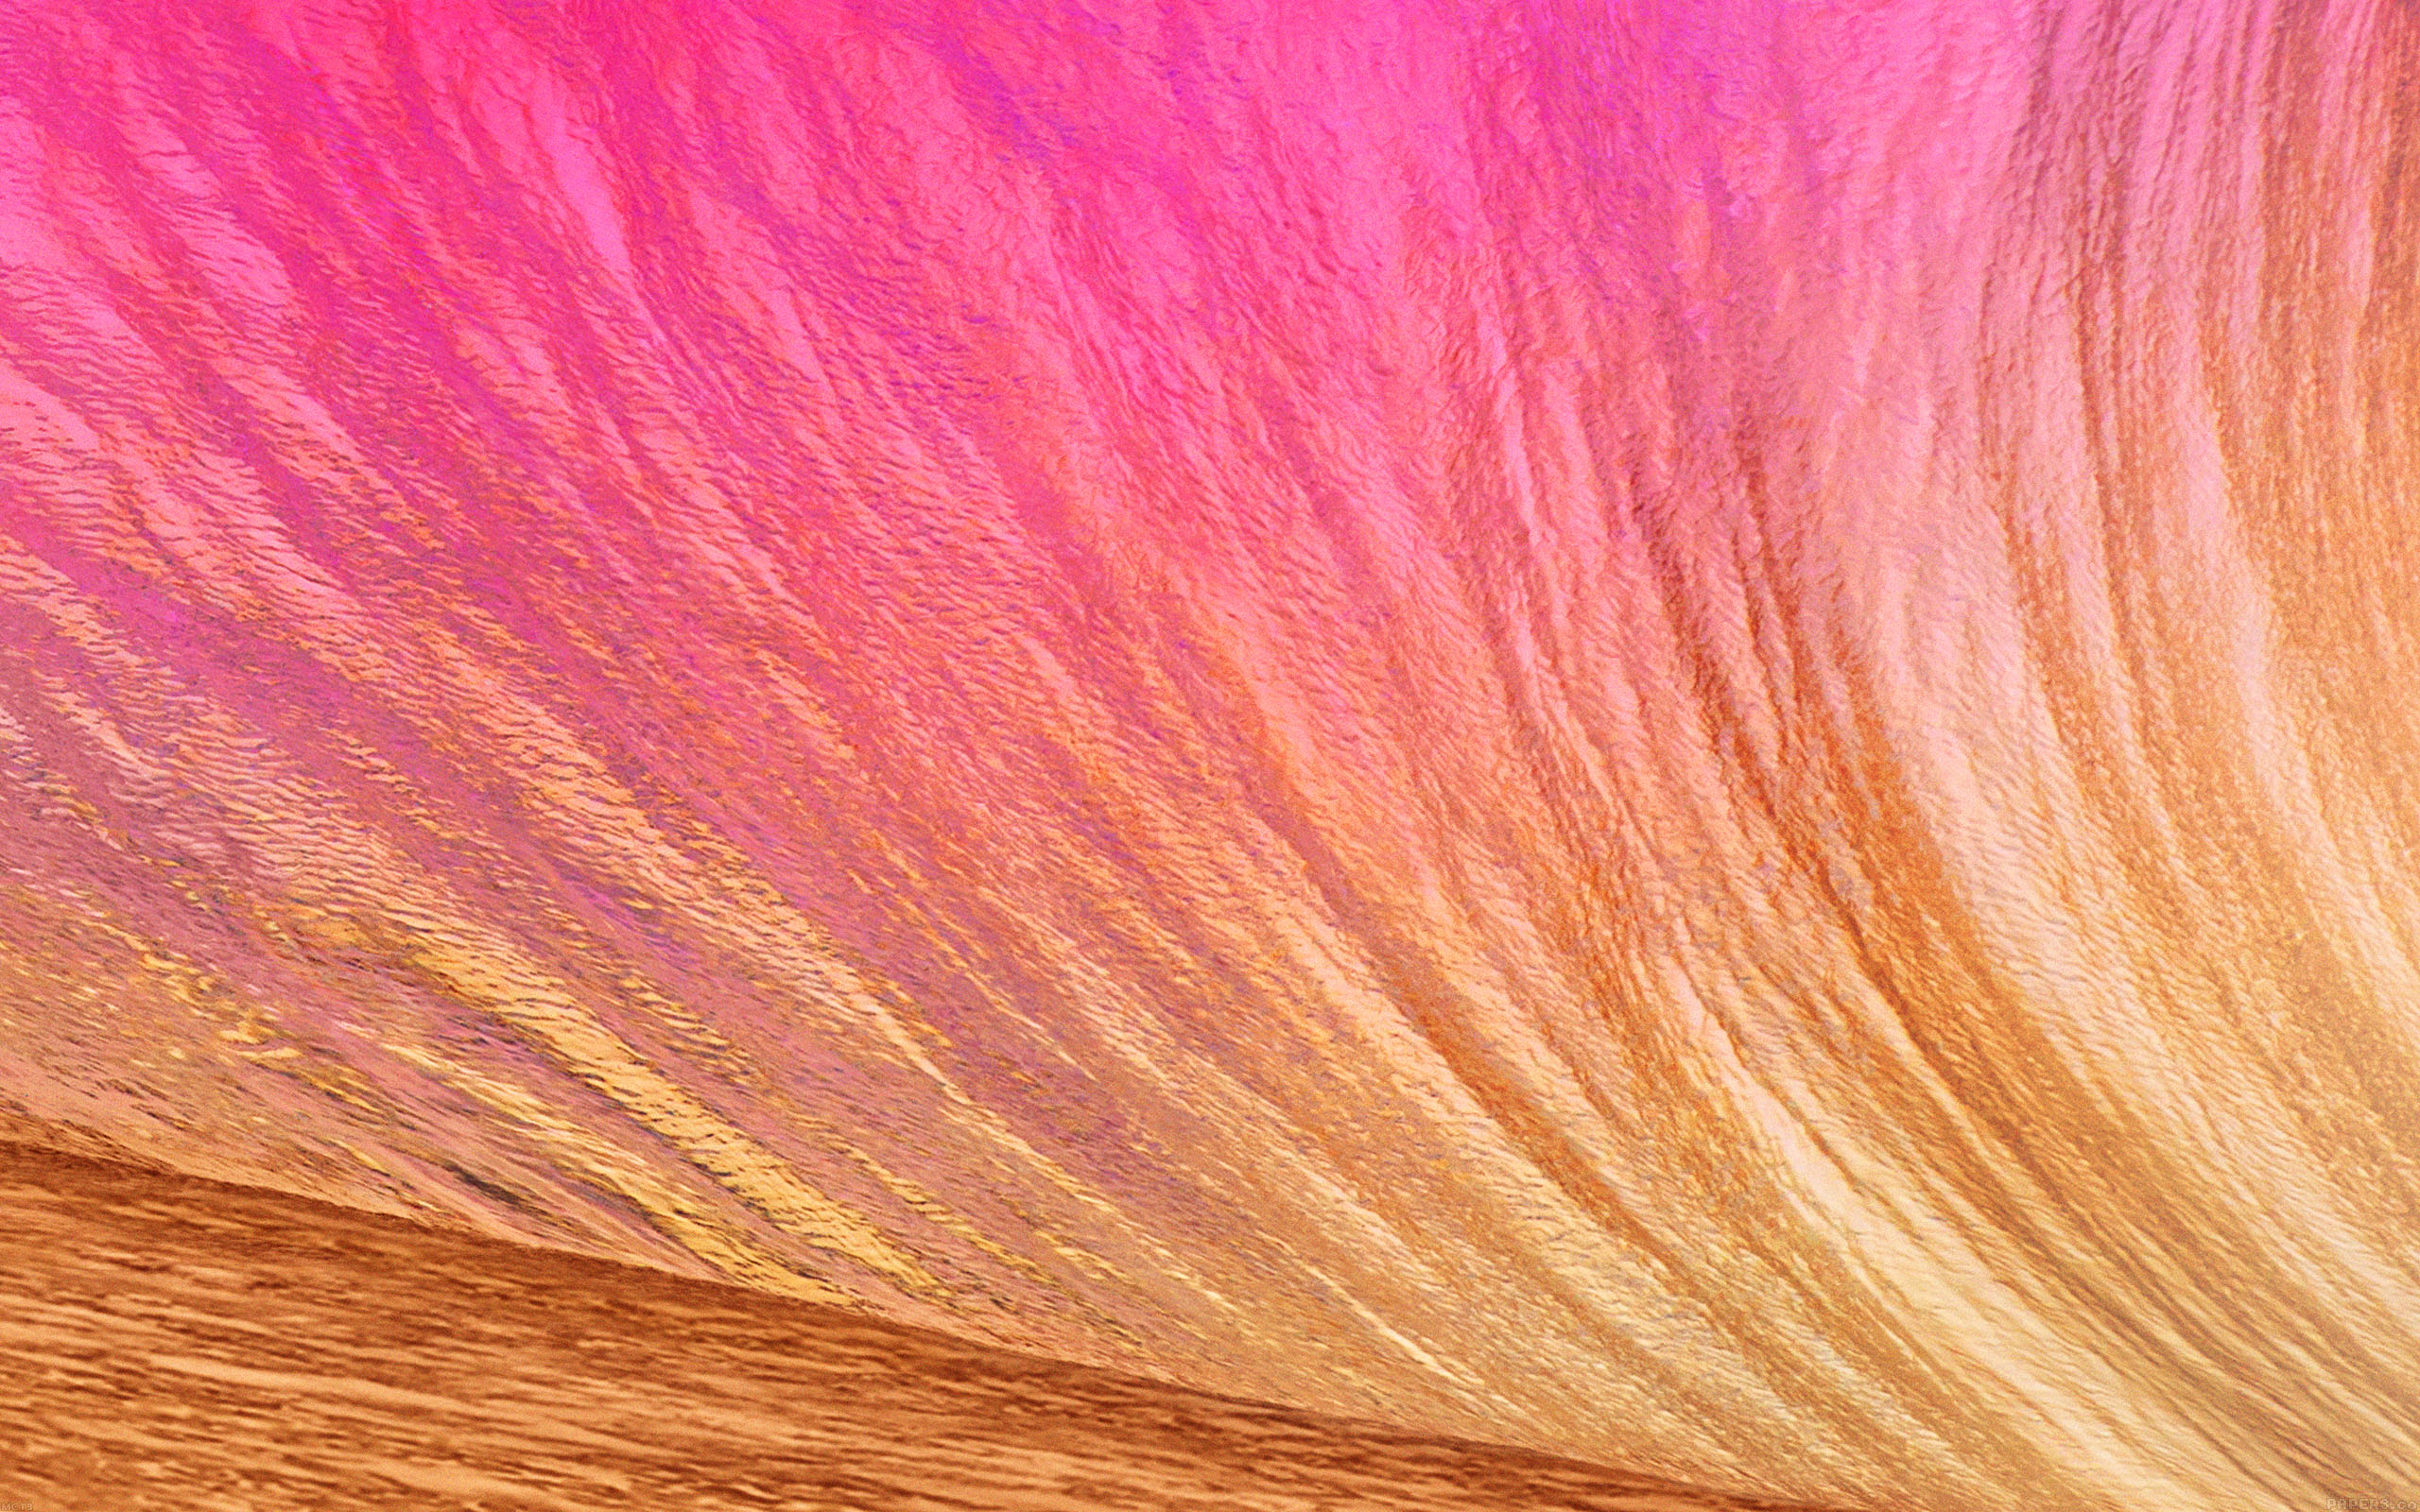 Pink Flower Iphone Wallpaper Mc13 Wallpaper Gold Wave Apple Sea Papers Co